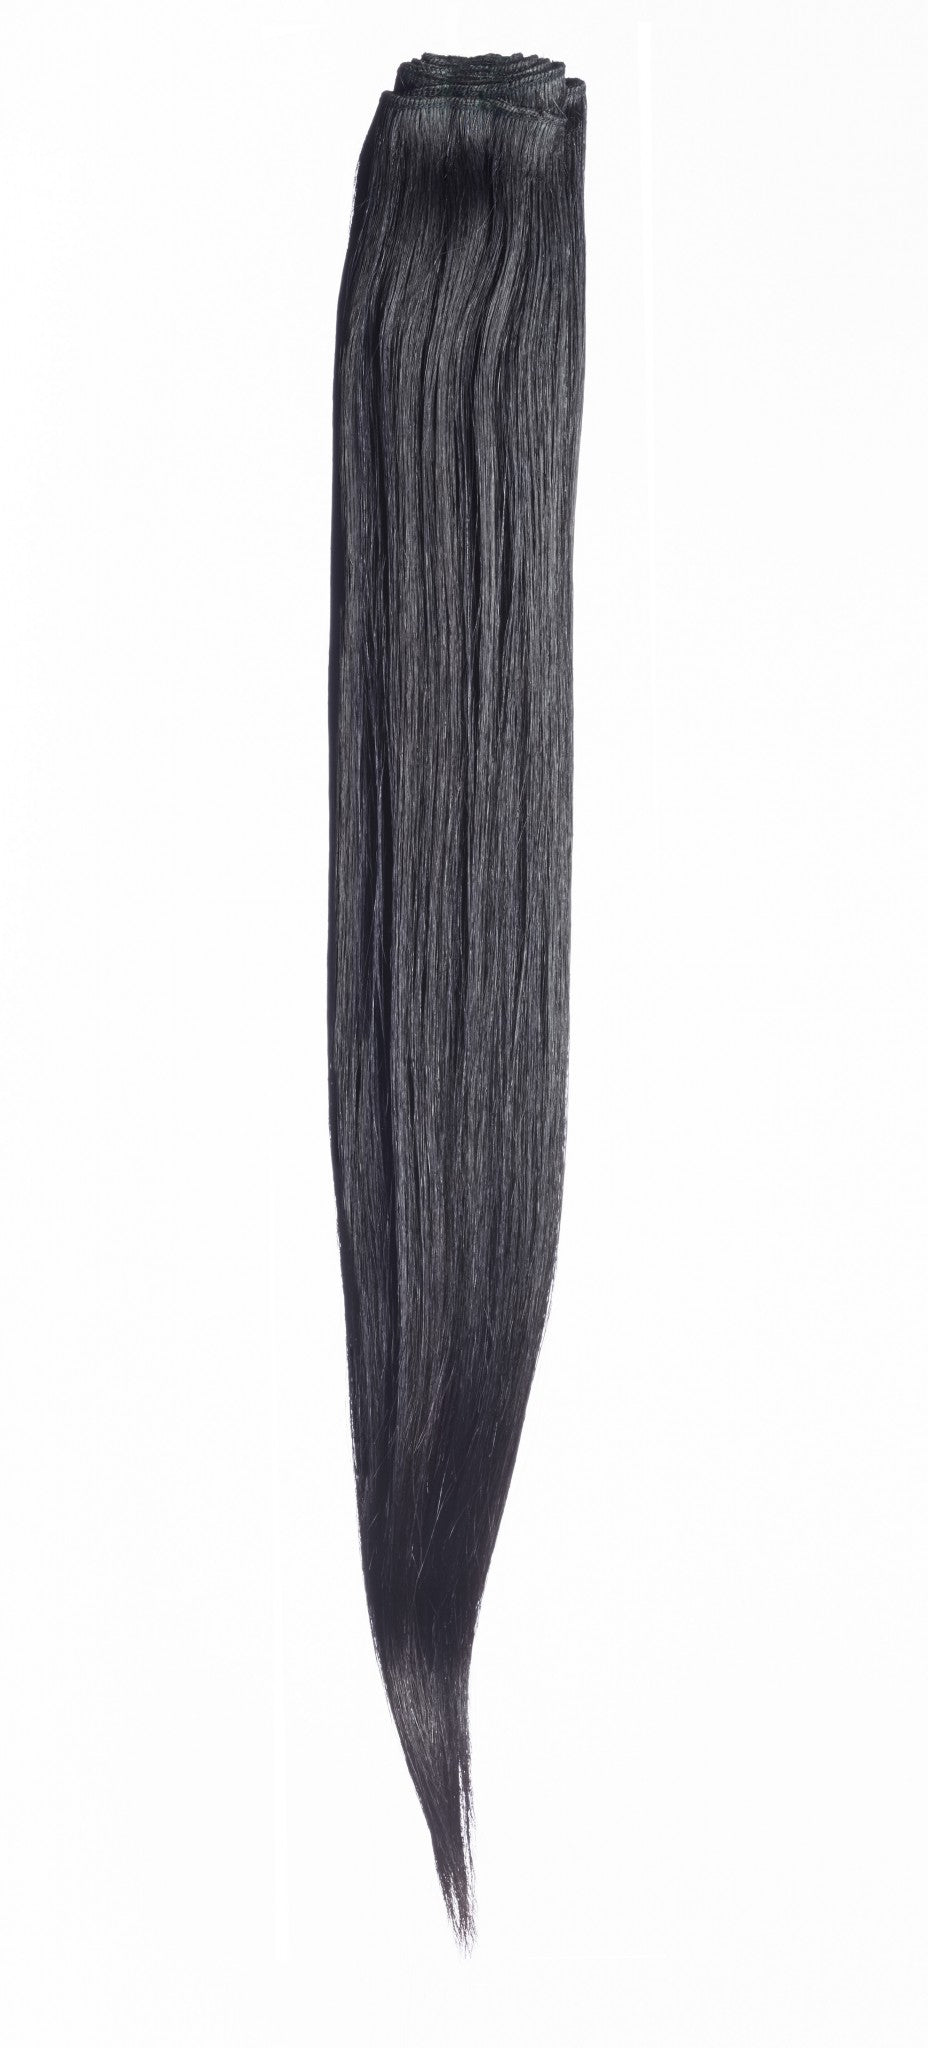 SILK Straight Indian Hair